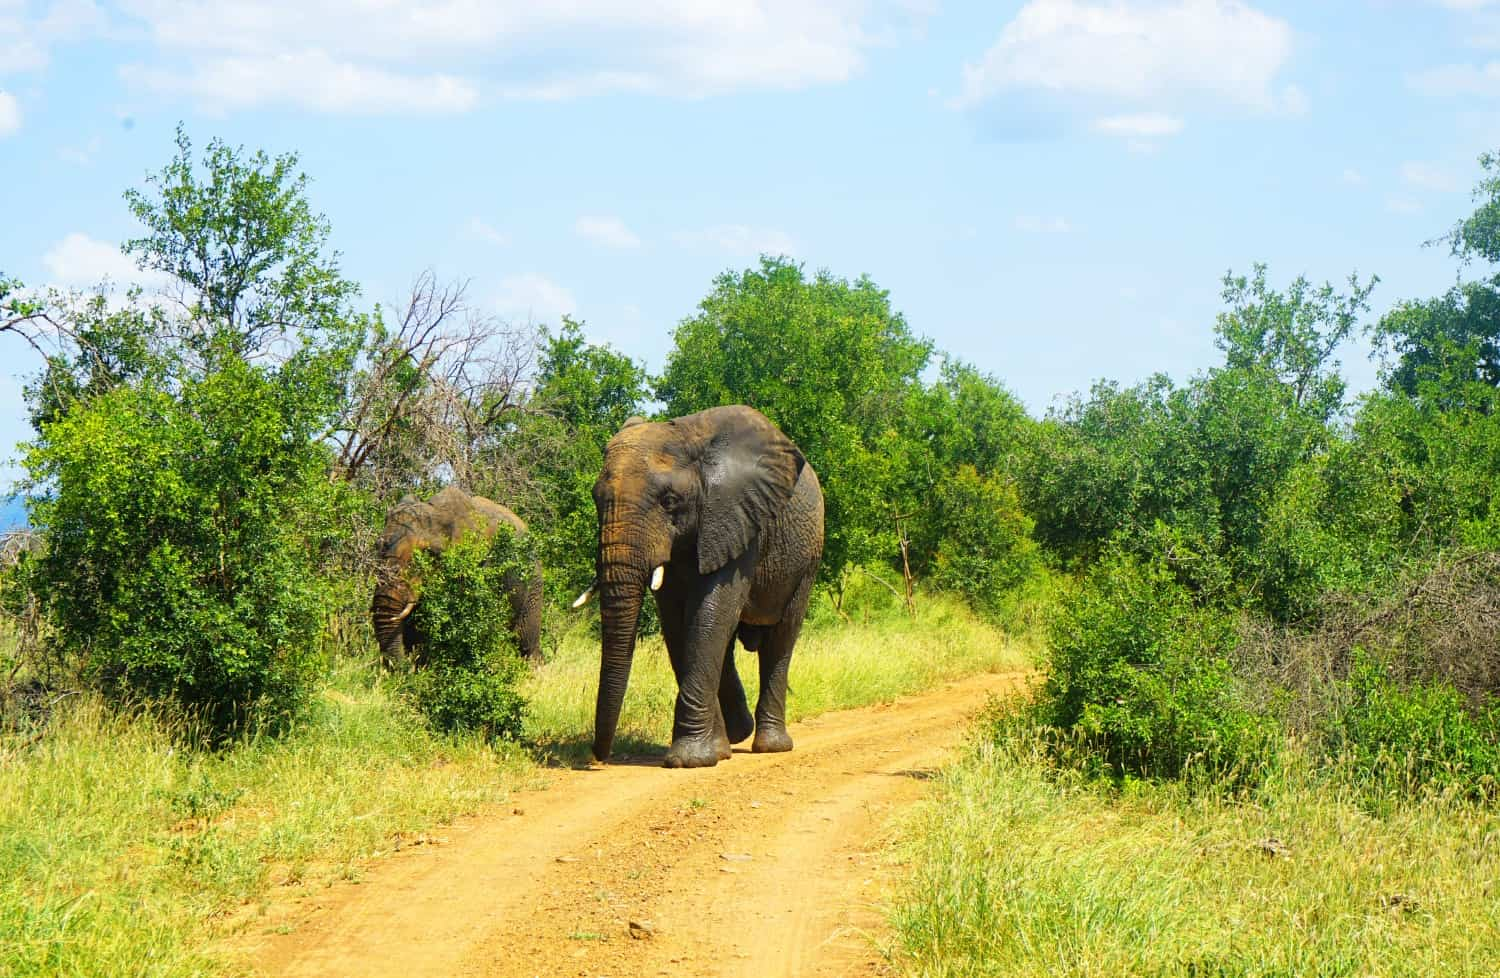 Elephant at Hlane National Park